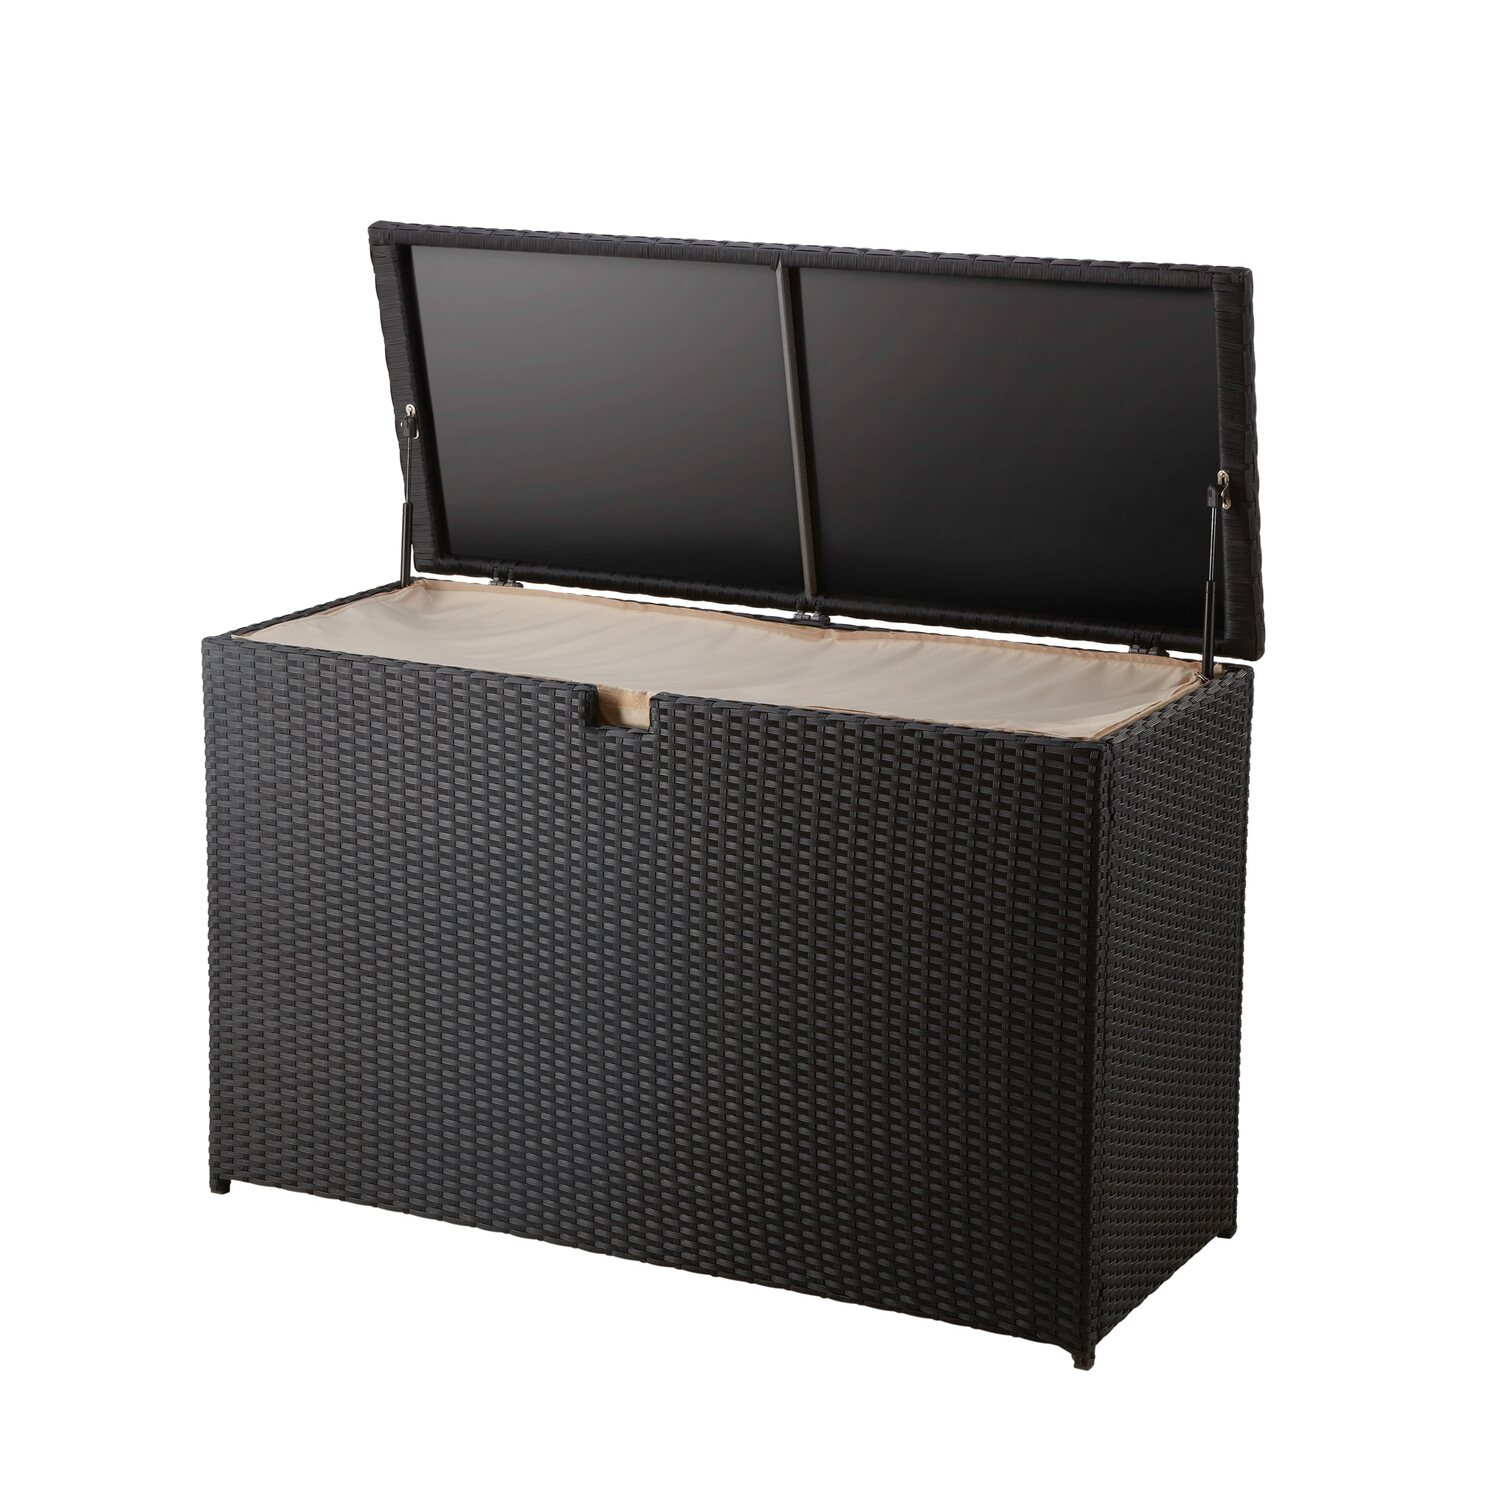 obi kissenbox davenport schwarz kaufen bei obi. Black Bedroom Furniture Sets. Home Design Ideas